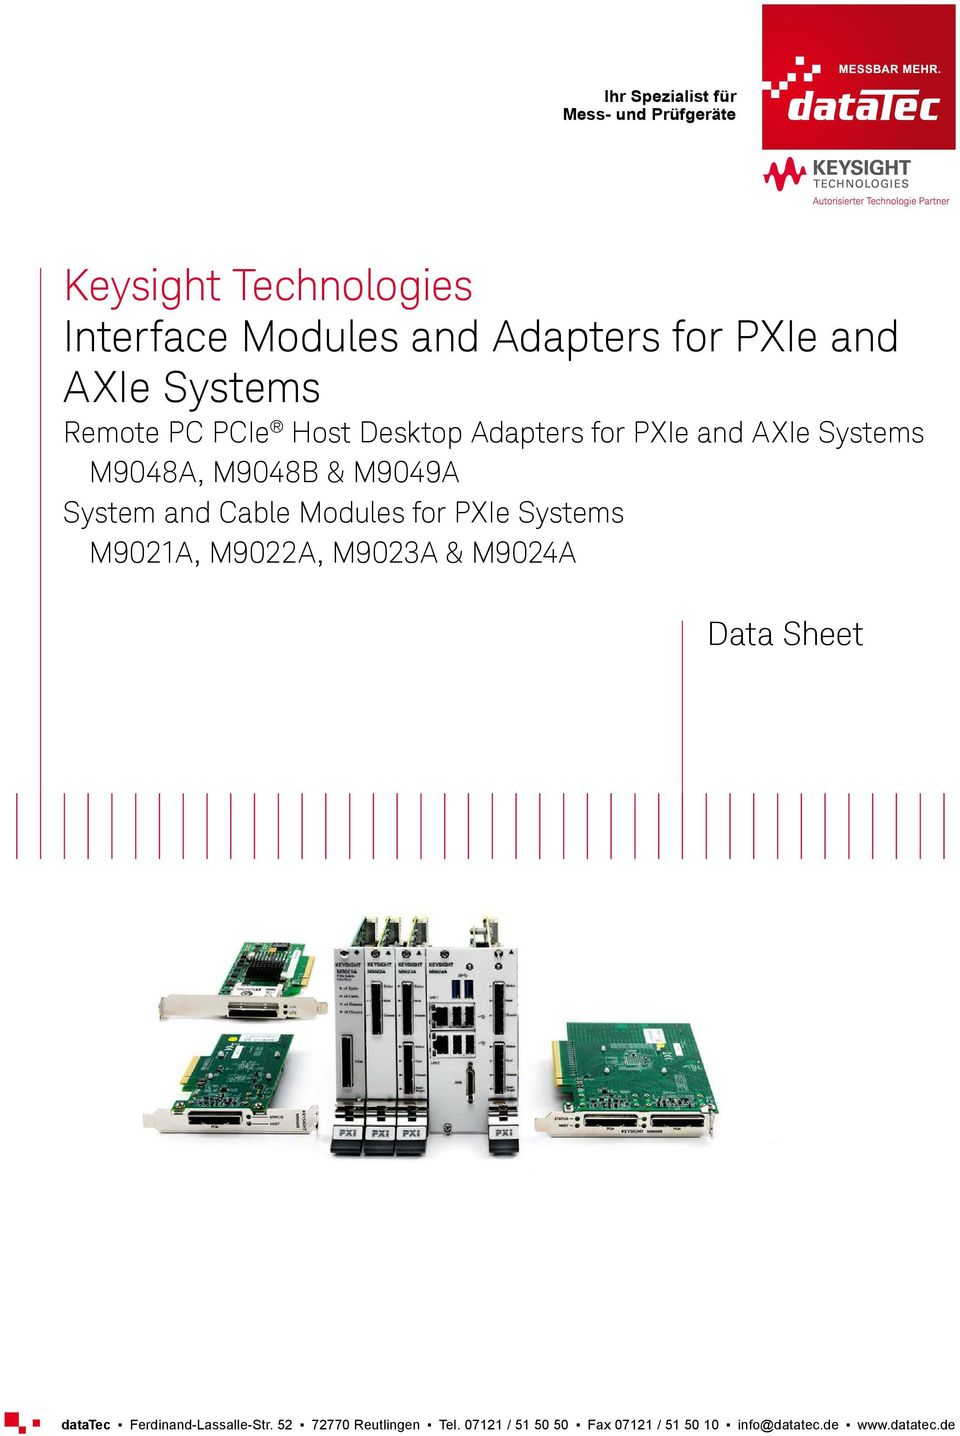 Desktop Adapters for PXIe and AXIe Systems M9048A, M9048B & M9049A